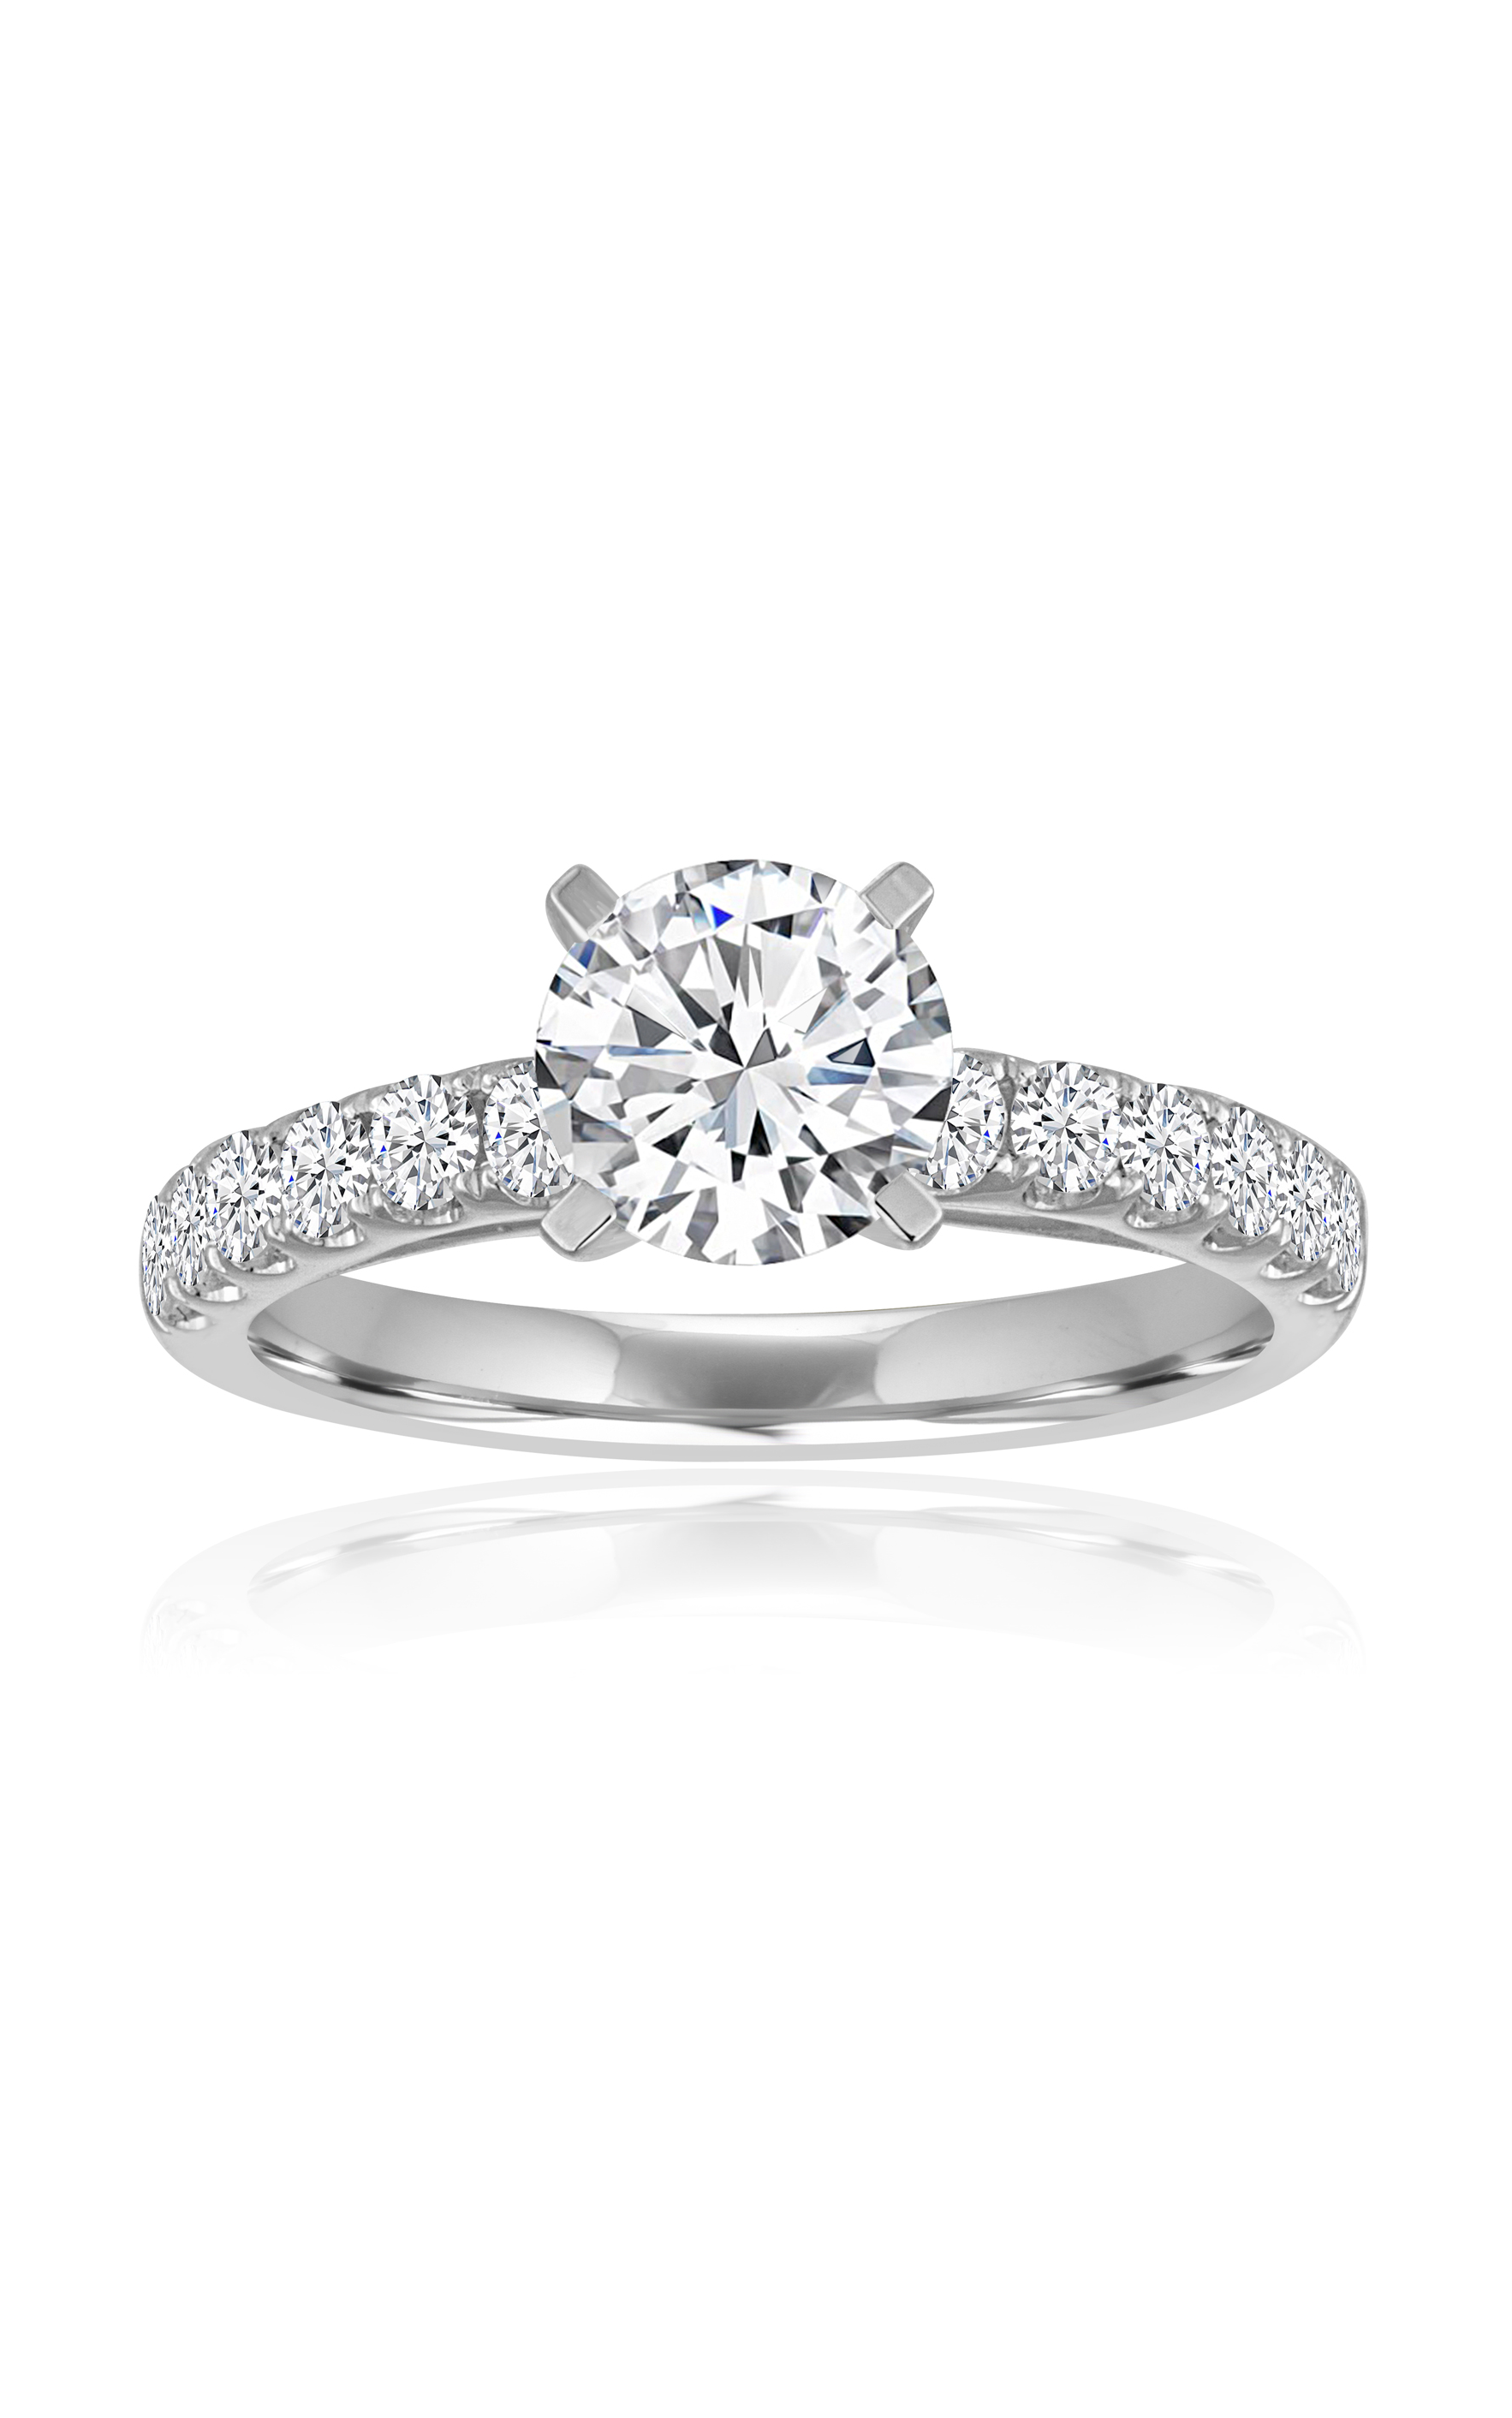 Imagine Bridal Engagement Rings 60156D-1 2 product image